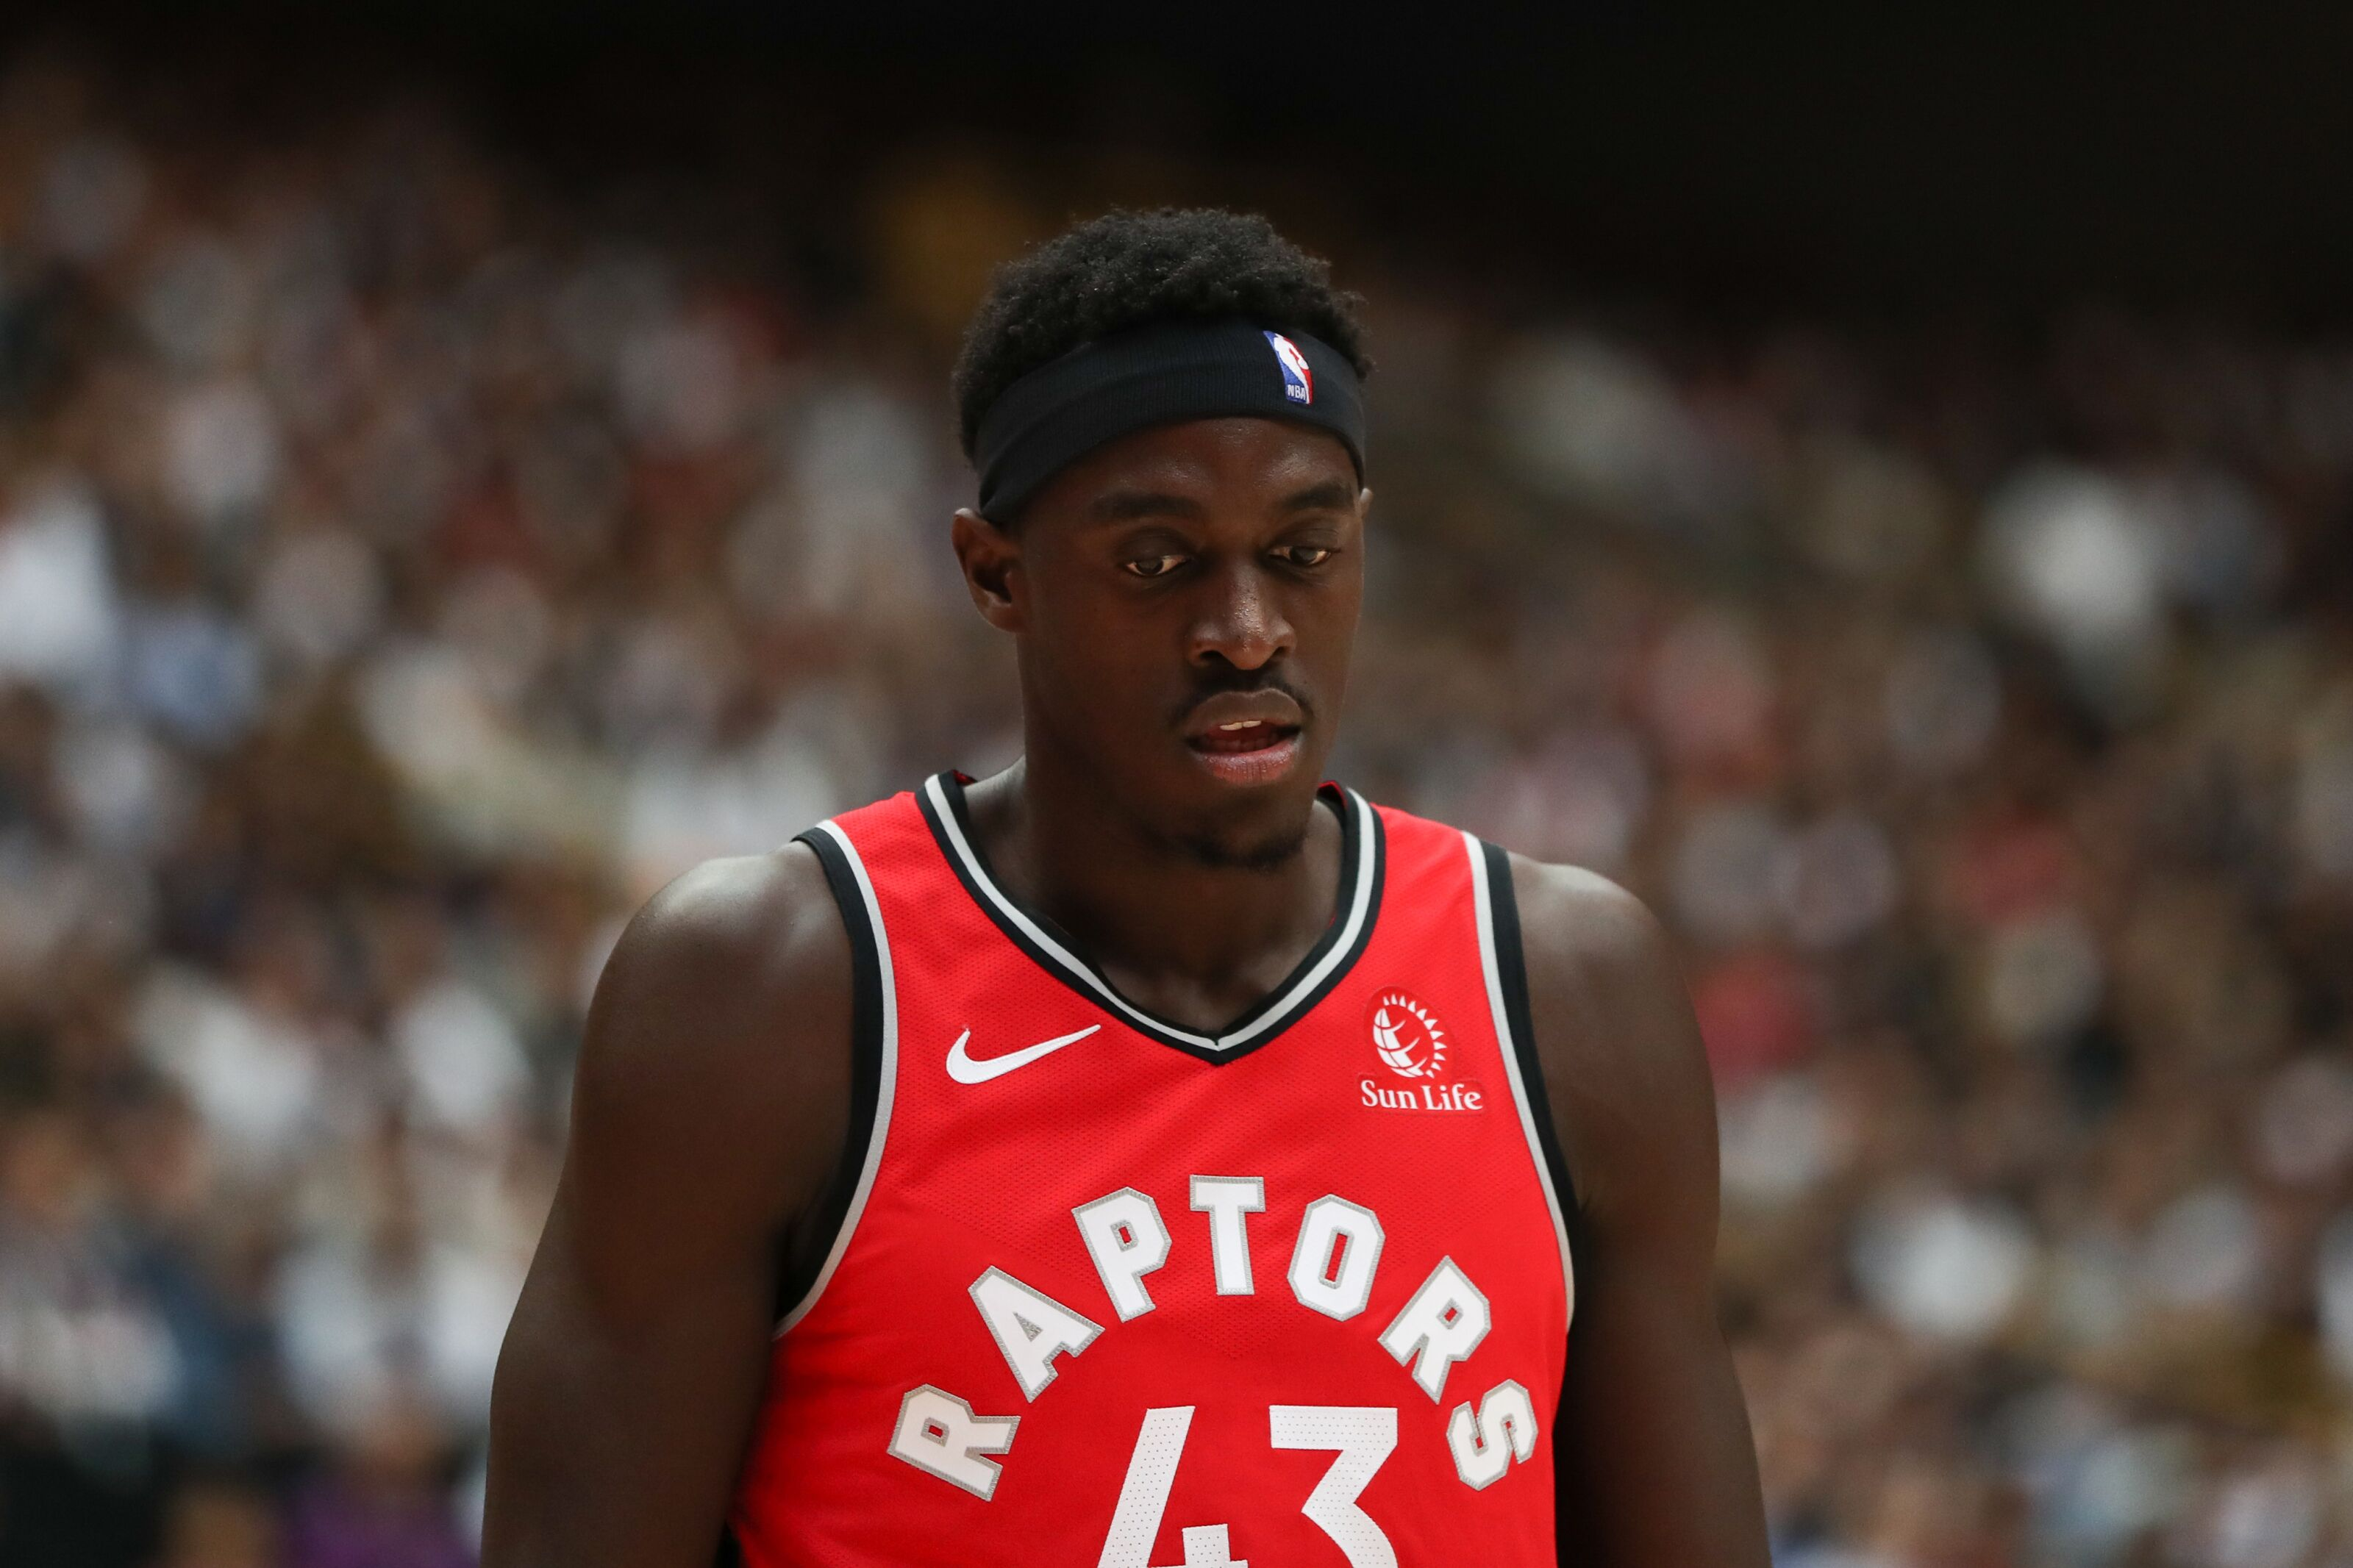 As expected, Pascal Siakam is the new face of the Raptors